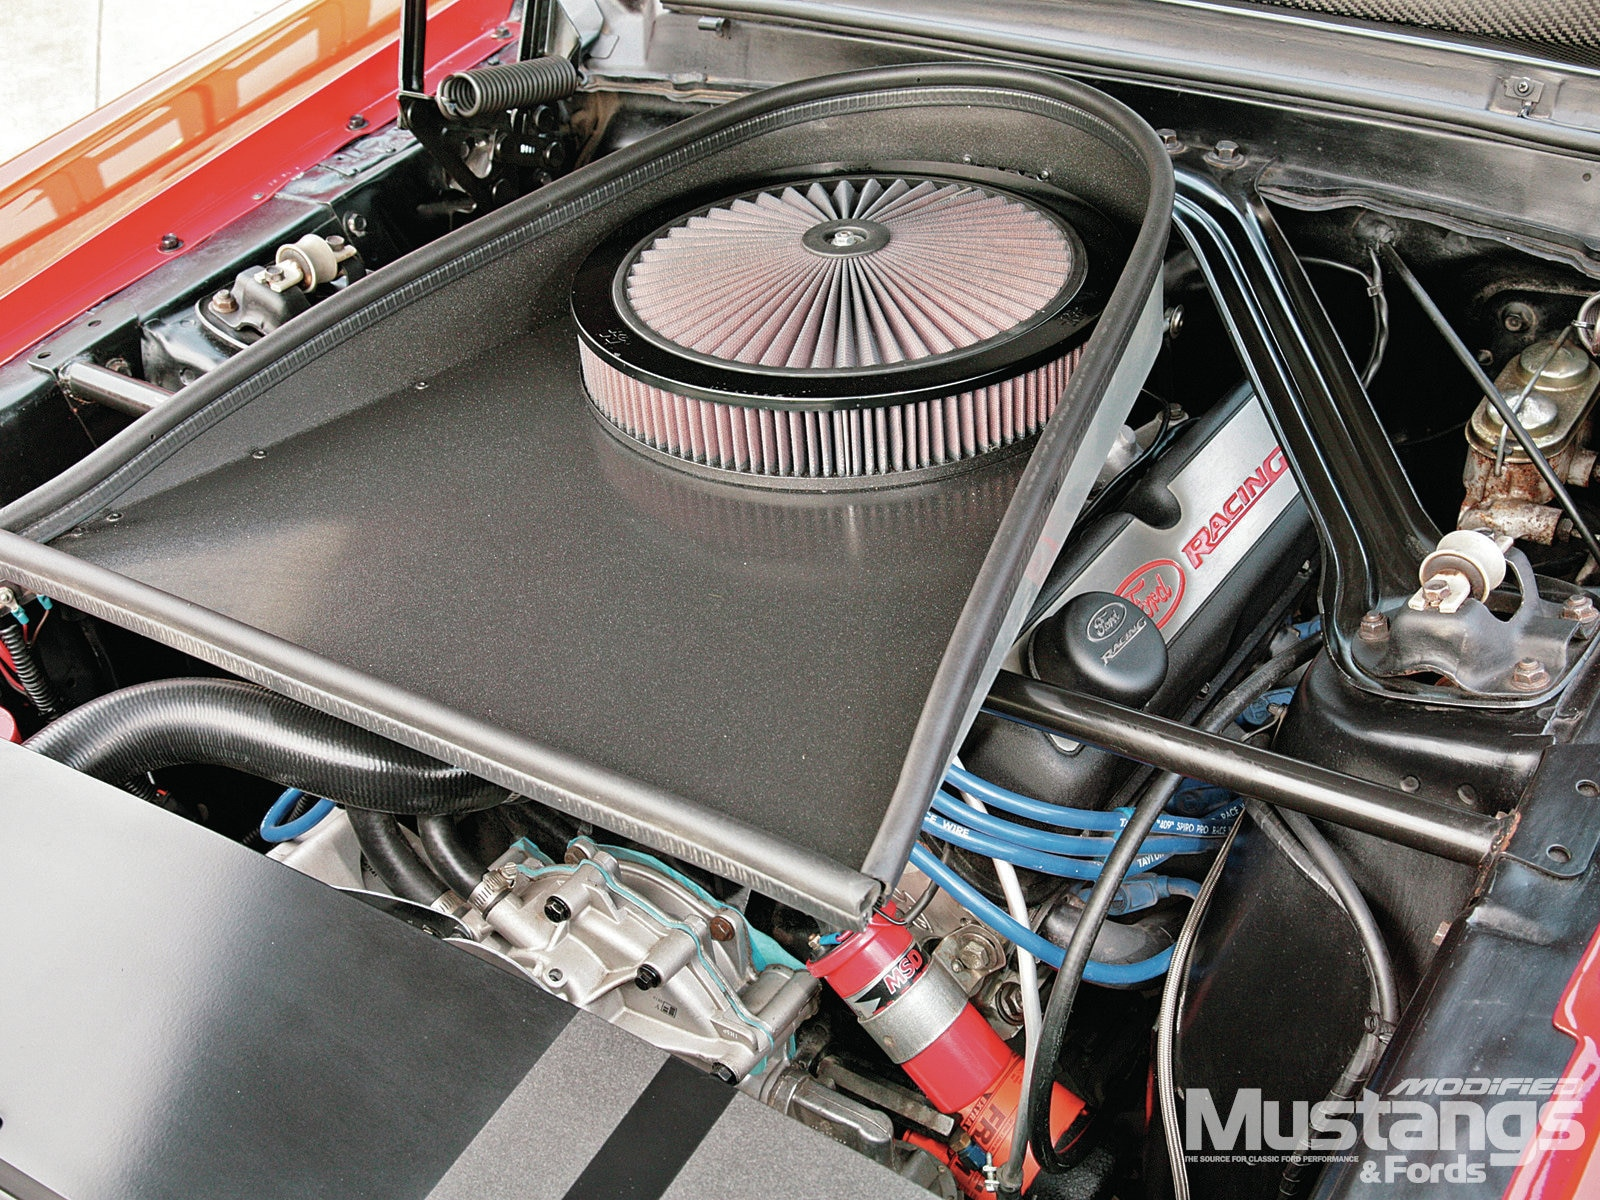 1968 Ford Mustang Coupe Engine